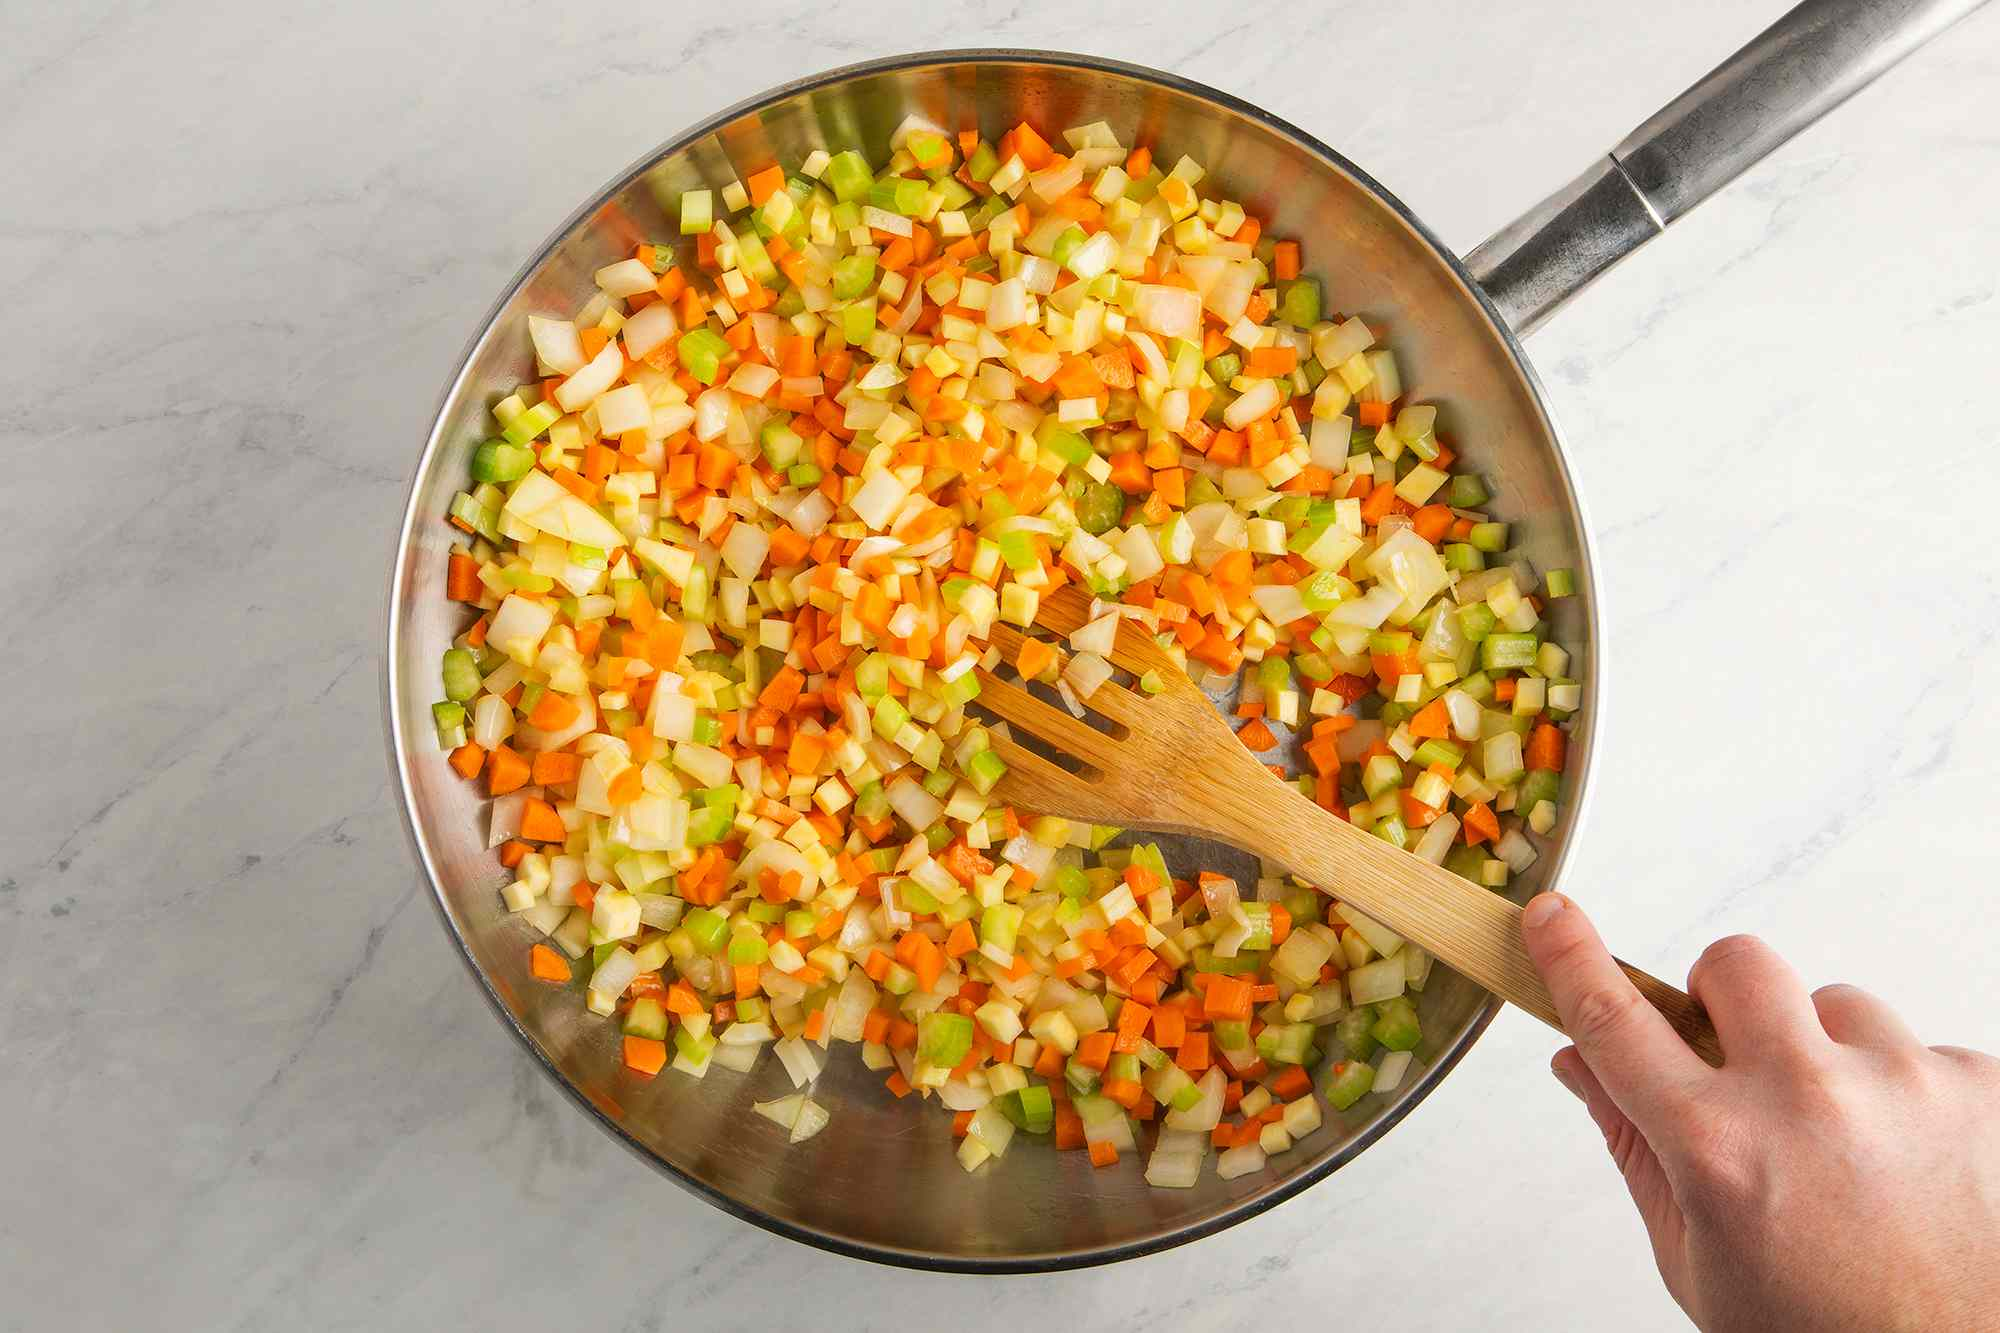 onions, carrots, parsnips, and celery cooking with lard in a skillet